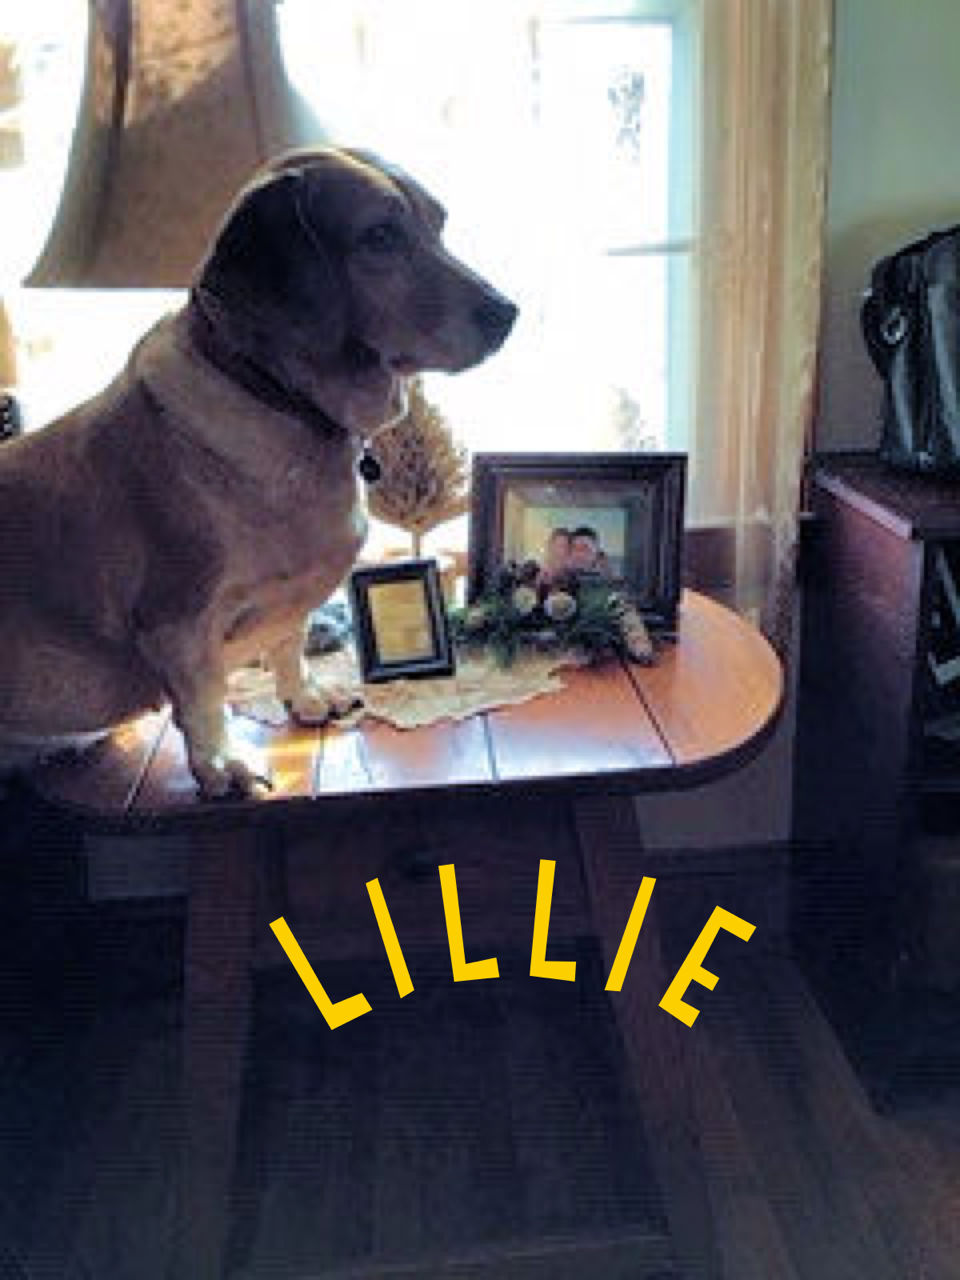 Lillie the dog